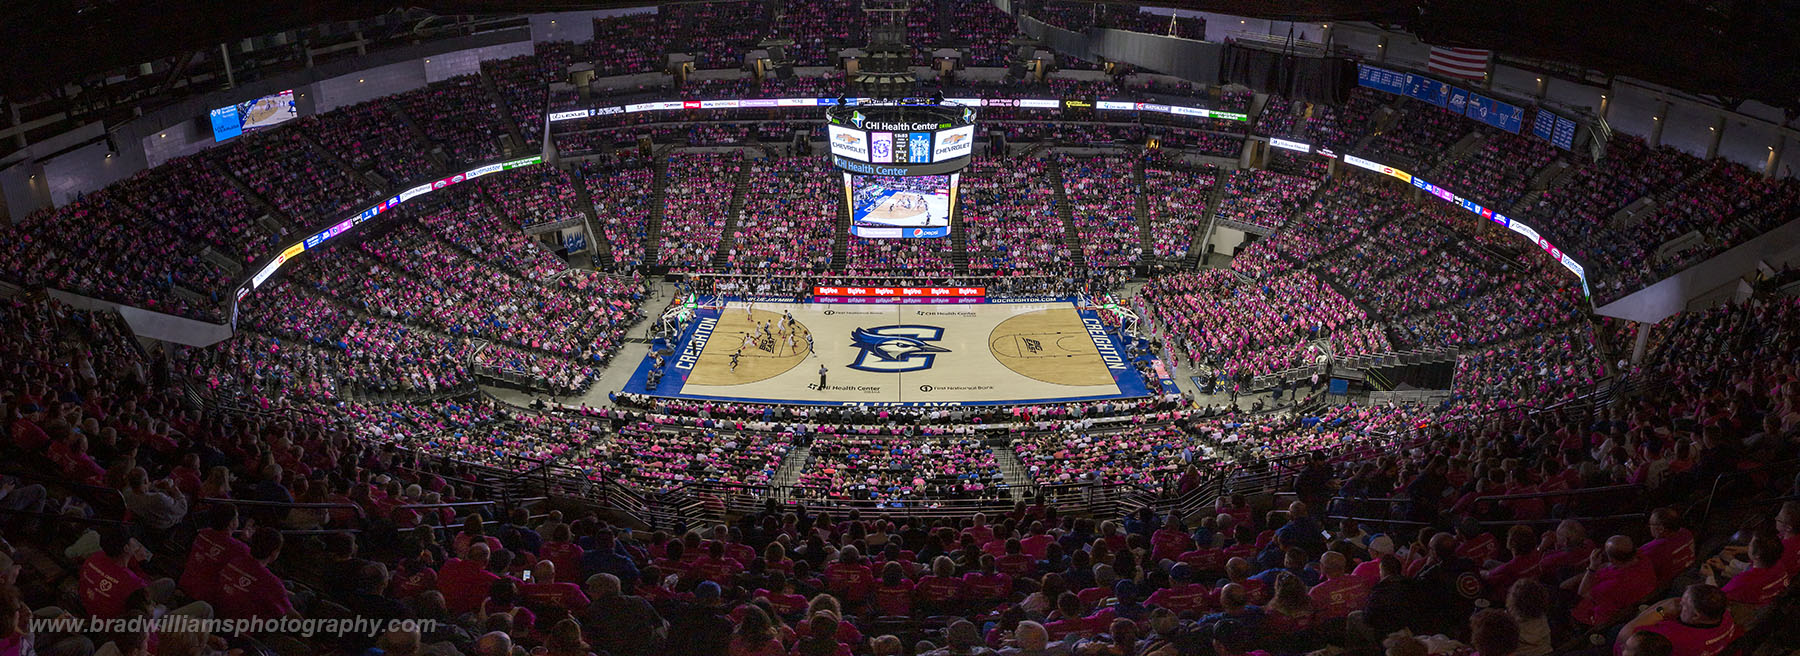 """The annual Creighton VS Cancer """"Pink Out Game"""".  Creighton VS Butler, 1/25/2019, Attendance = 18,089"""